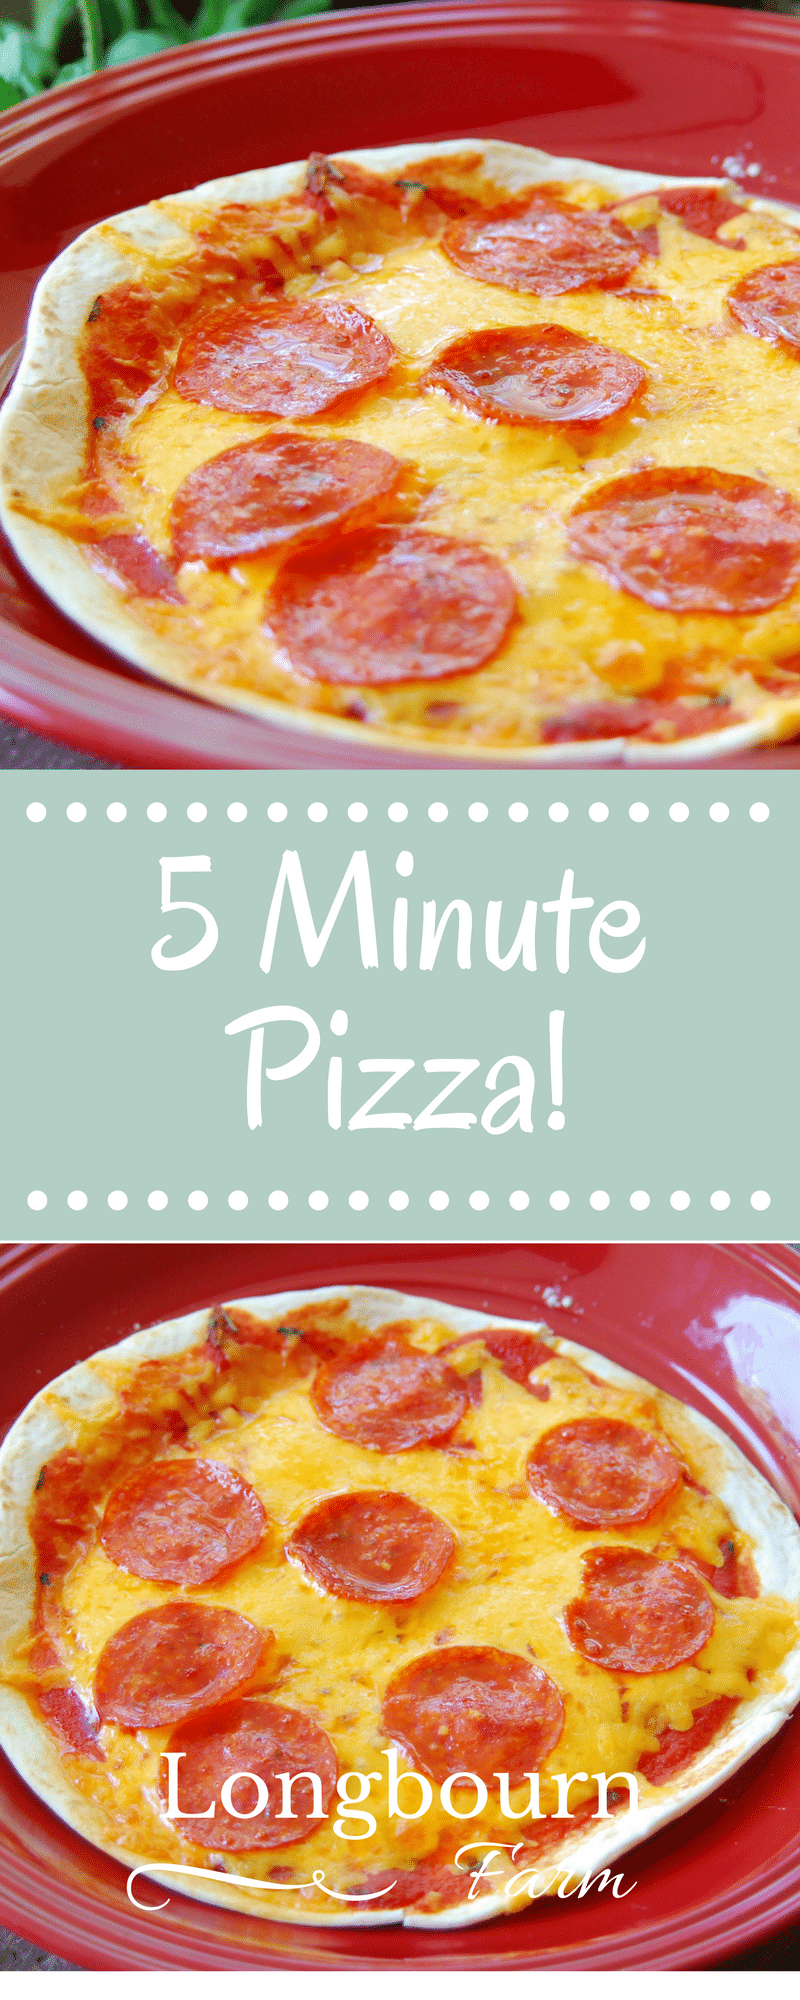 Looking for a quick weeknight meal, or a fast lunch? This 5 minute pizza will hit the spot. Easy, delicious, and a fast recipe! via @longbournfarm